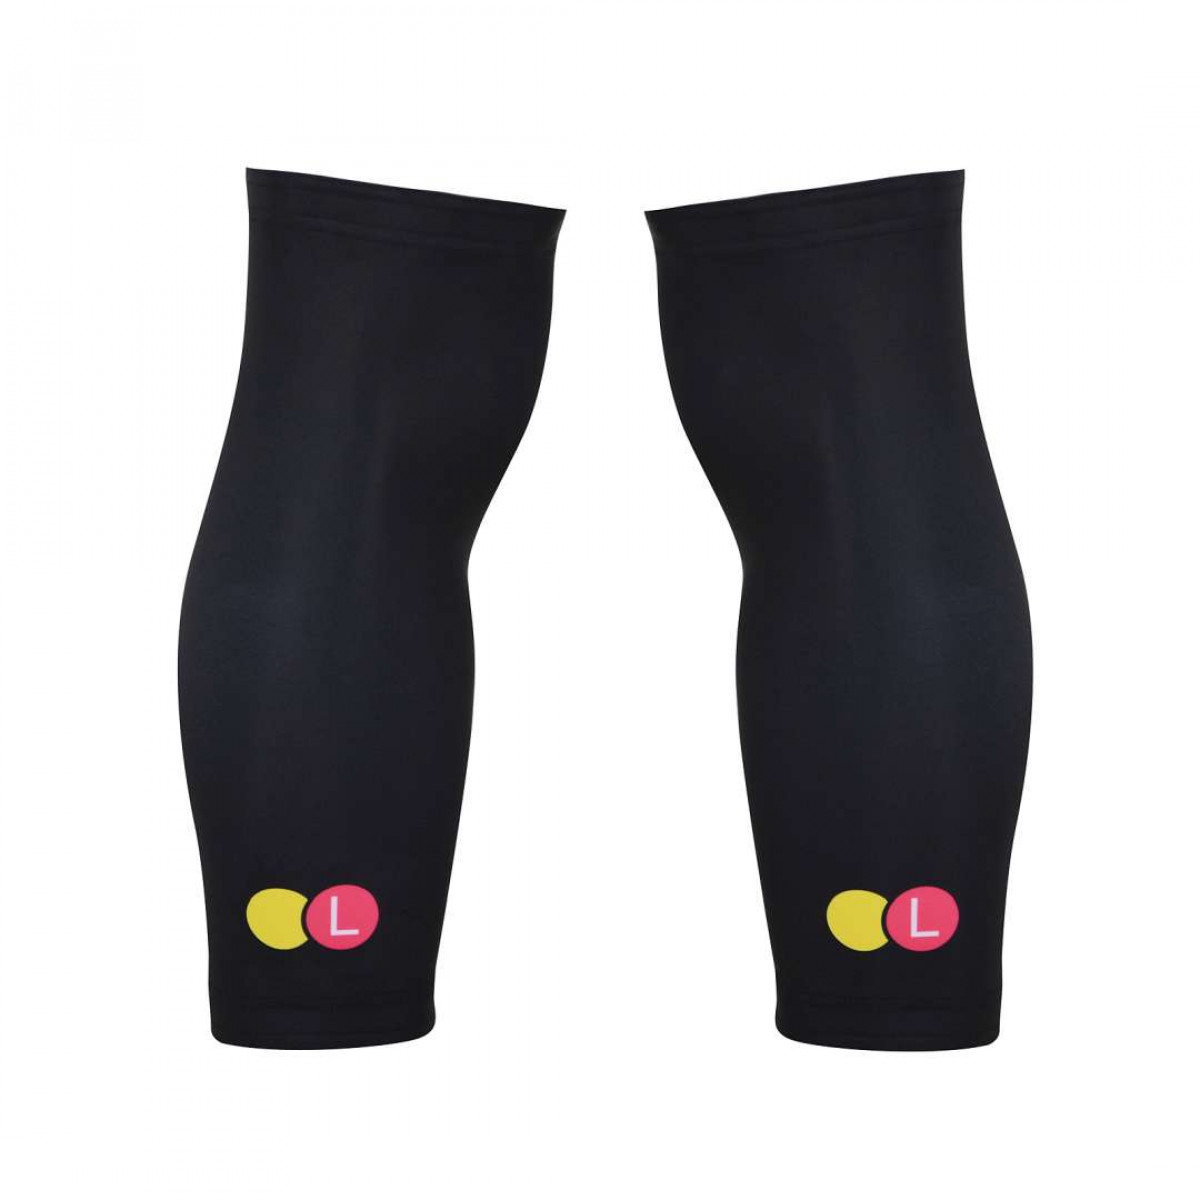 LifeofBikes ACC0006 WEB Knee Warmers